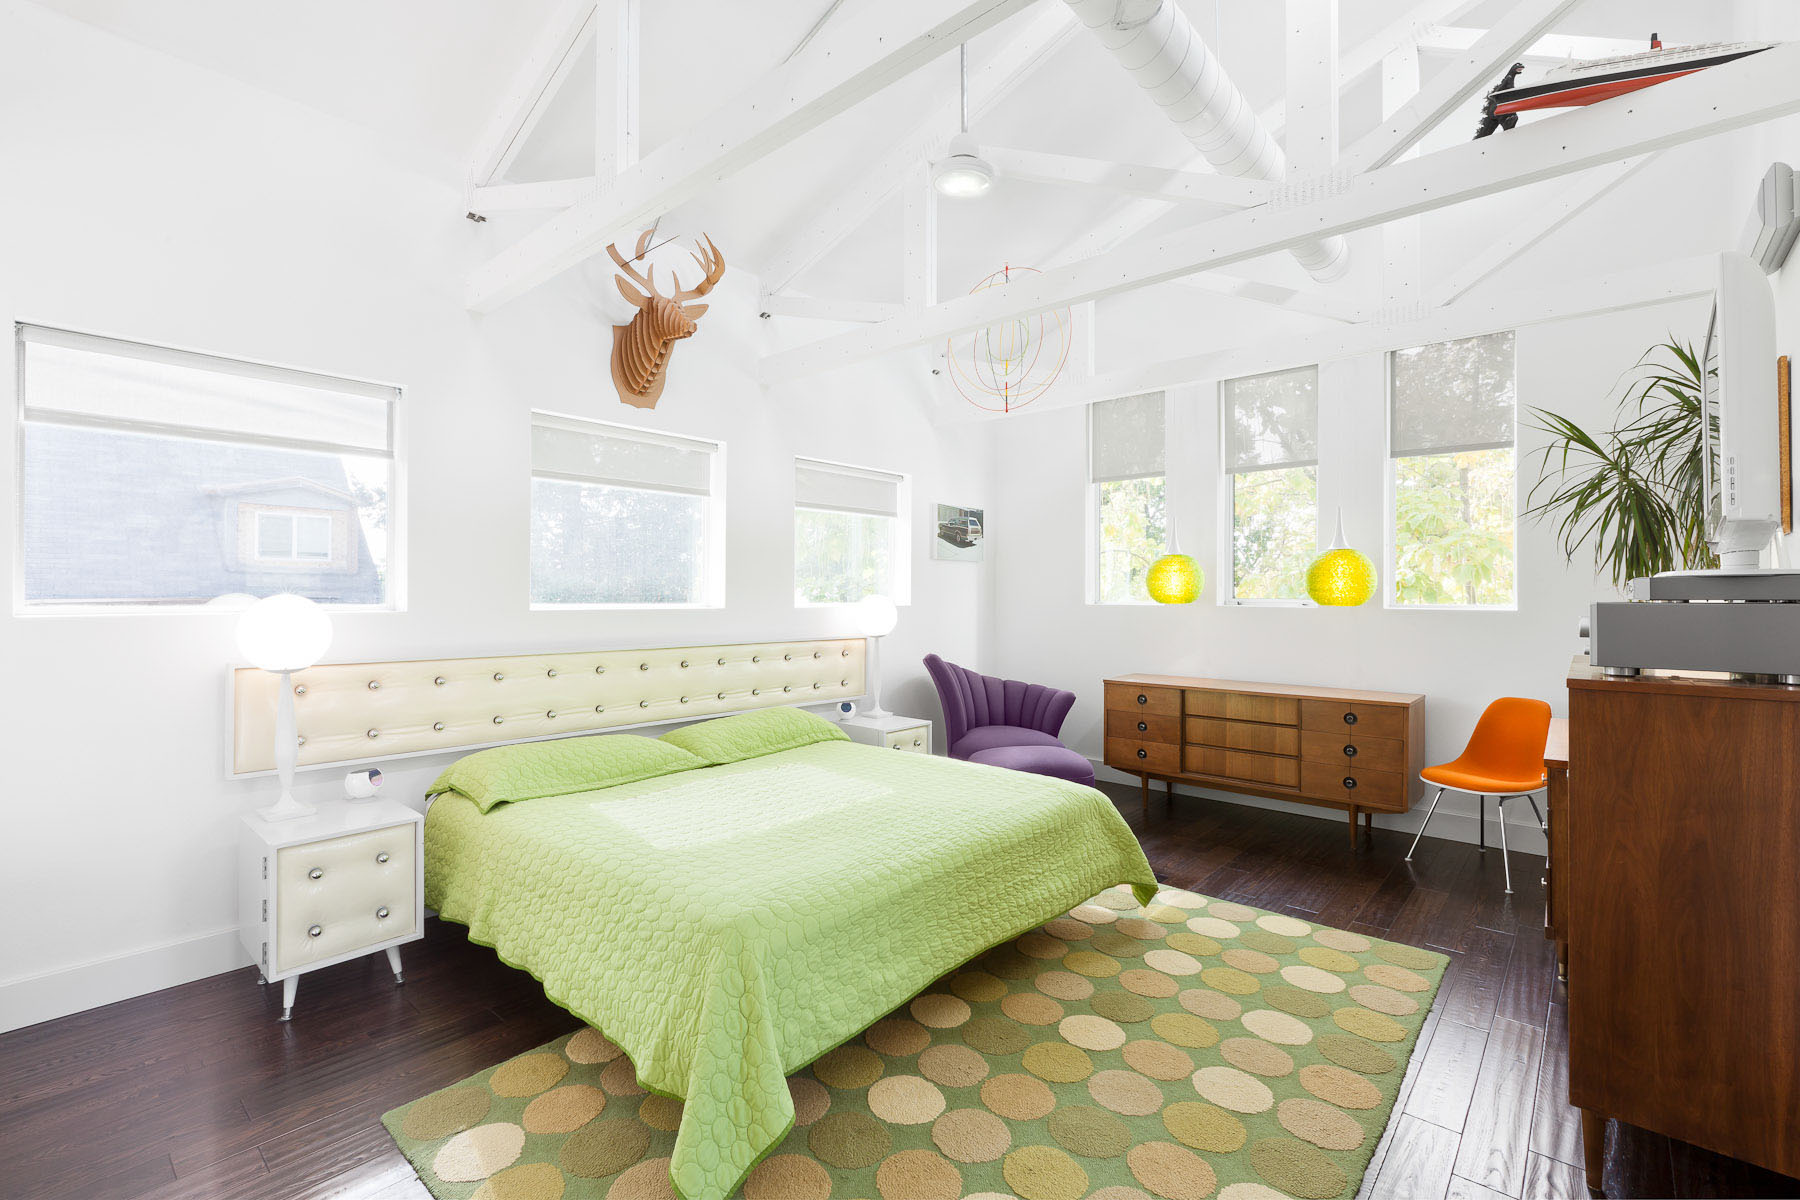 Bright white exposed rafter bedroom designed by Scott Adams Architect with retro style furnishings and appointments in Denver, CO